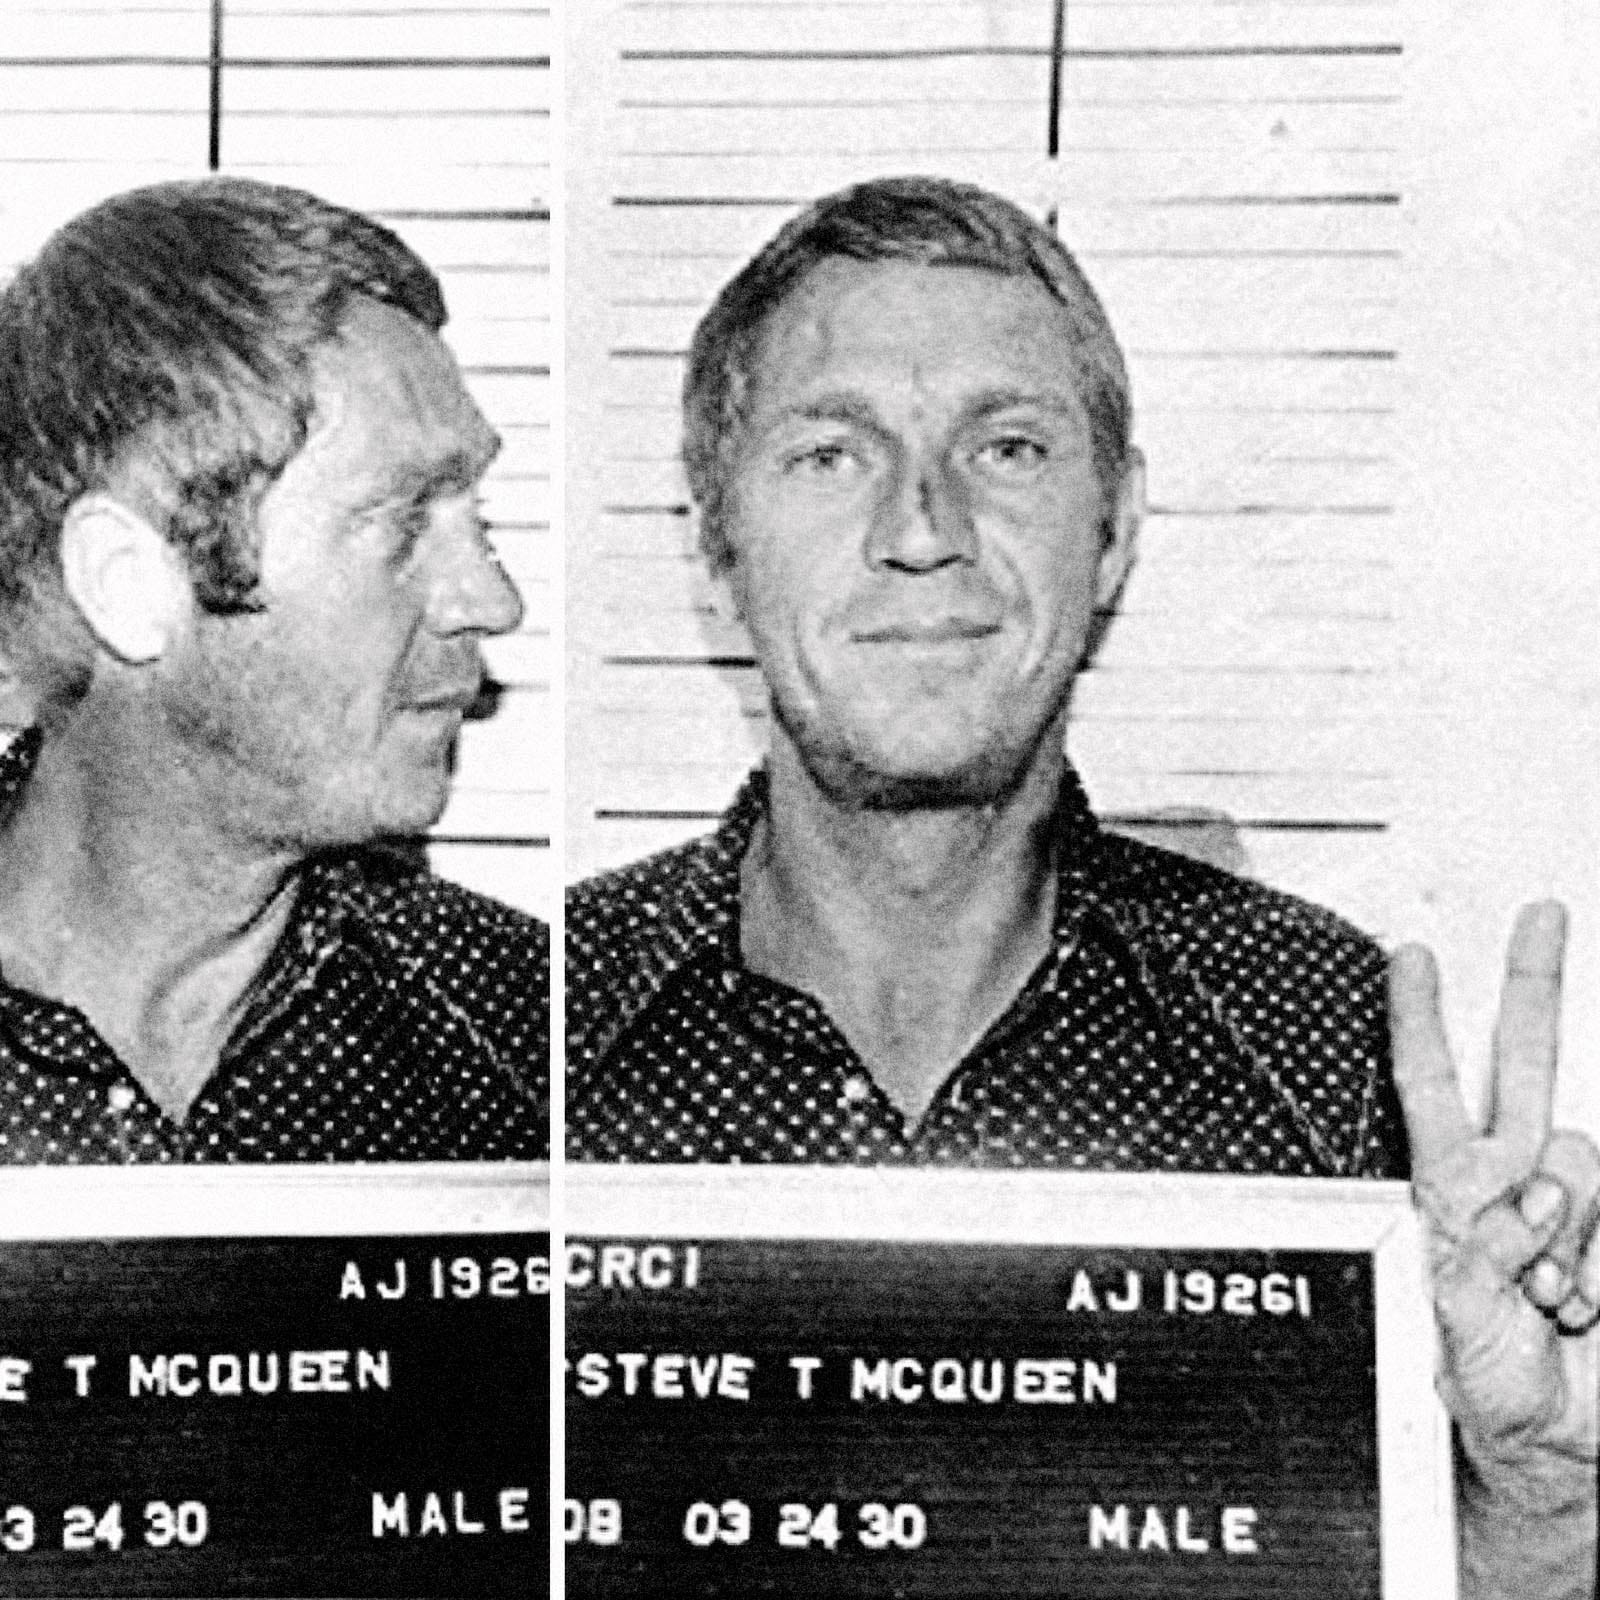 Steve McQueen, 1972   Steve McQueen was arrested in Anchorage, Alaska in 1972 for  driving under the influence . After posting bail and leaving town, McQueen was later convicted in absentia for reckless driving.